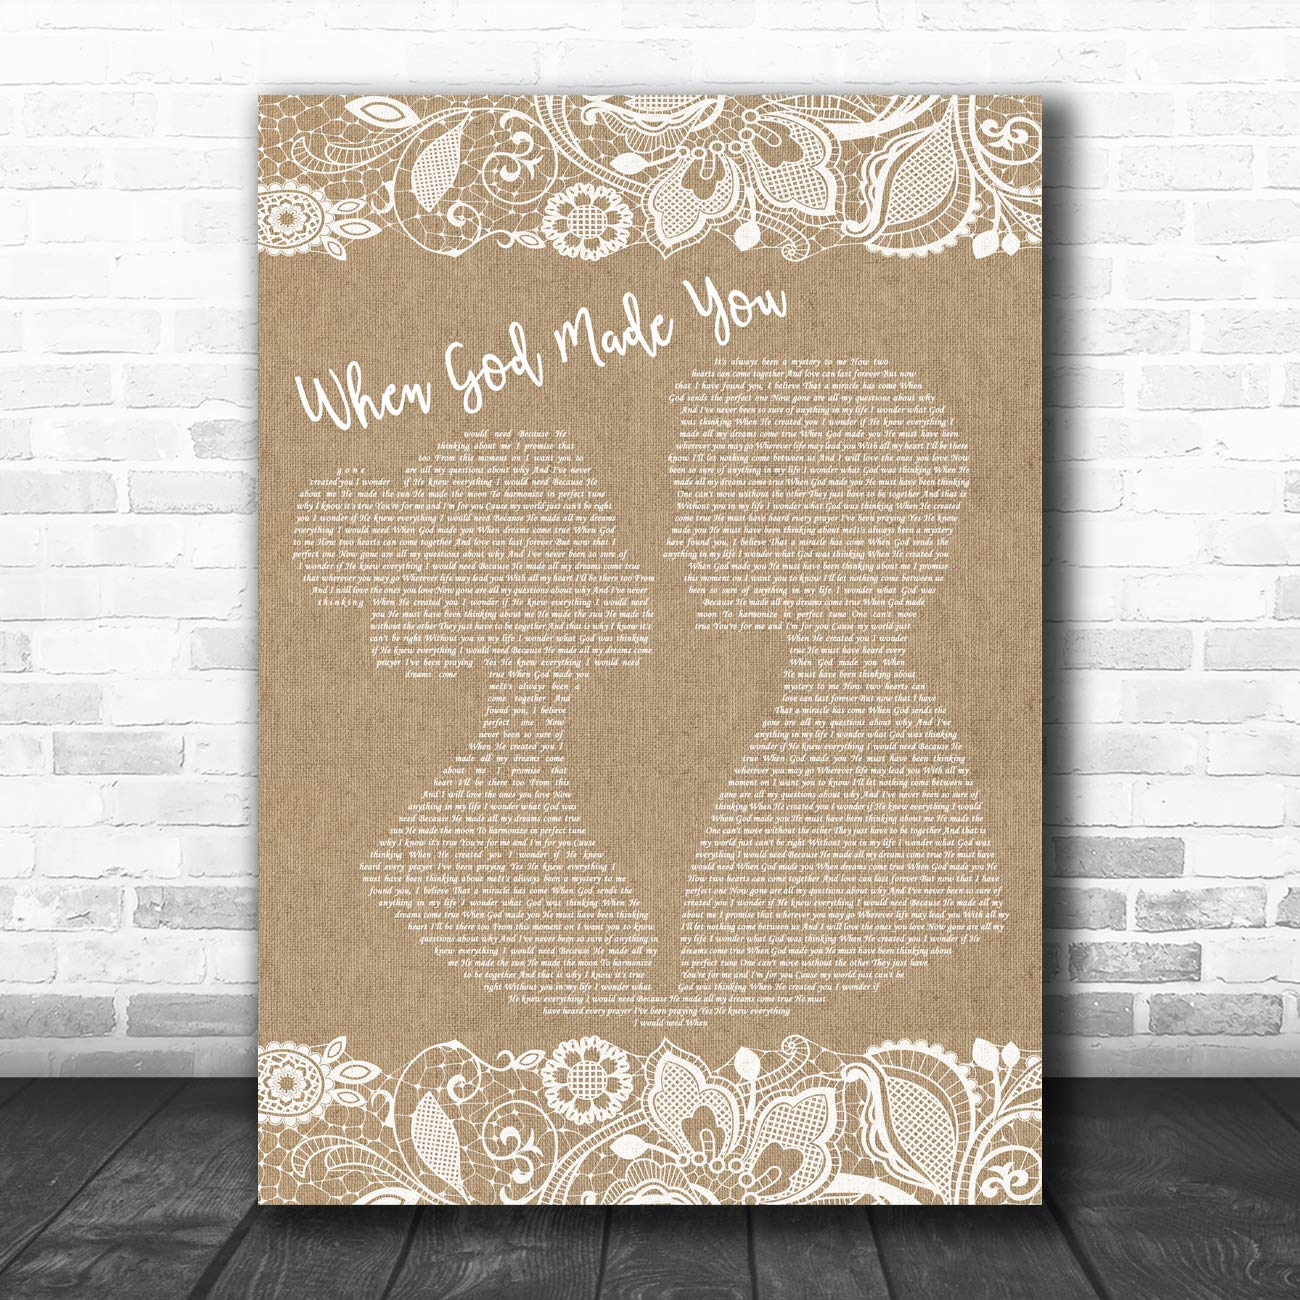 When God Made You Burlap Lace Song Lyric Art Music Quote Gift Poster Print